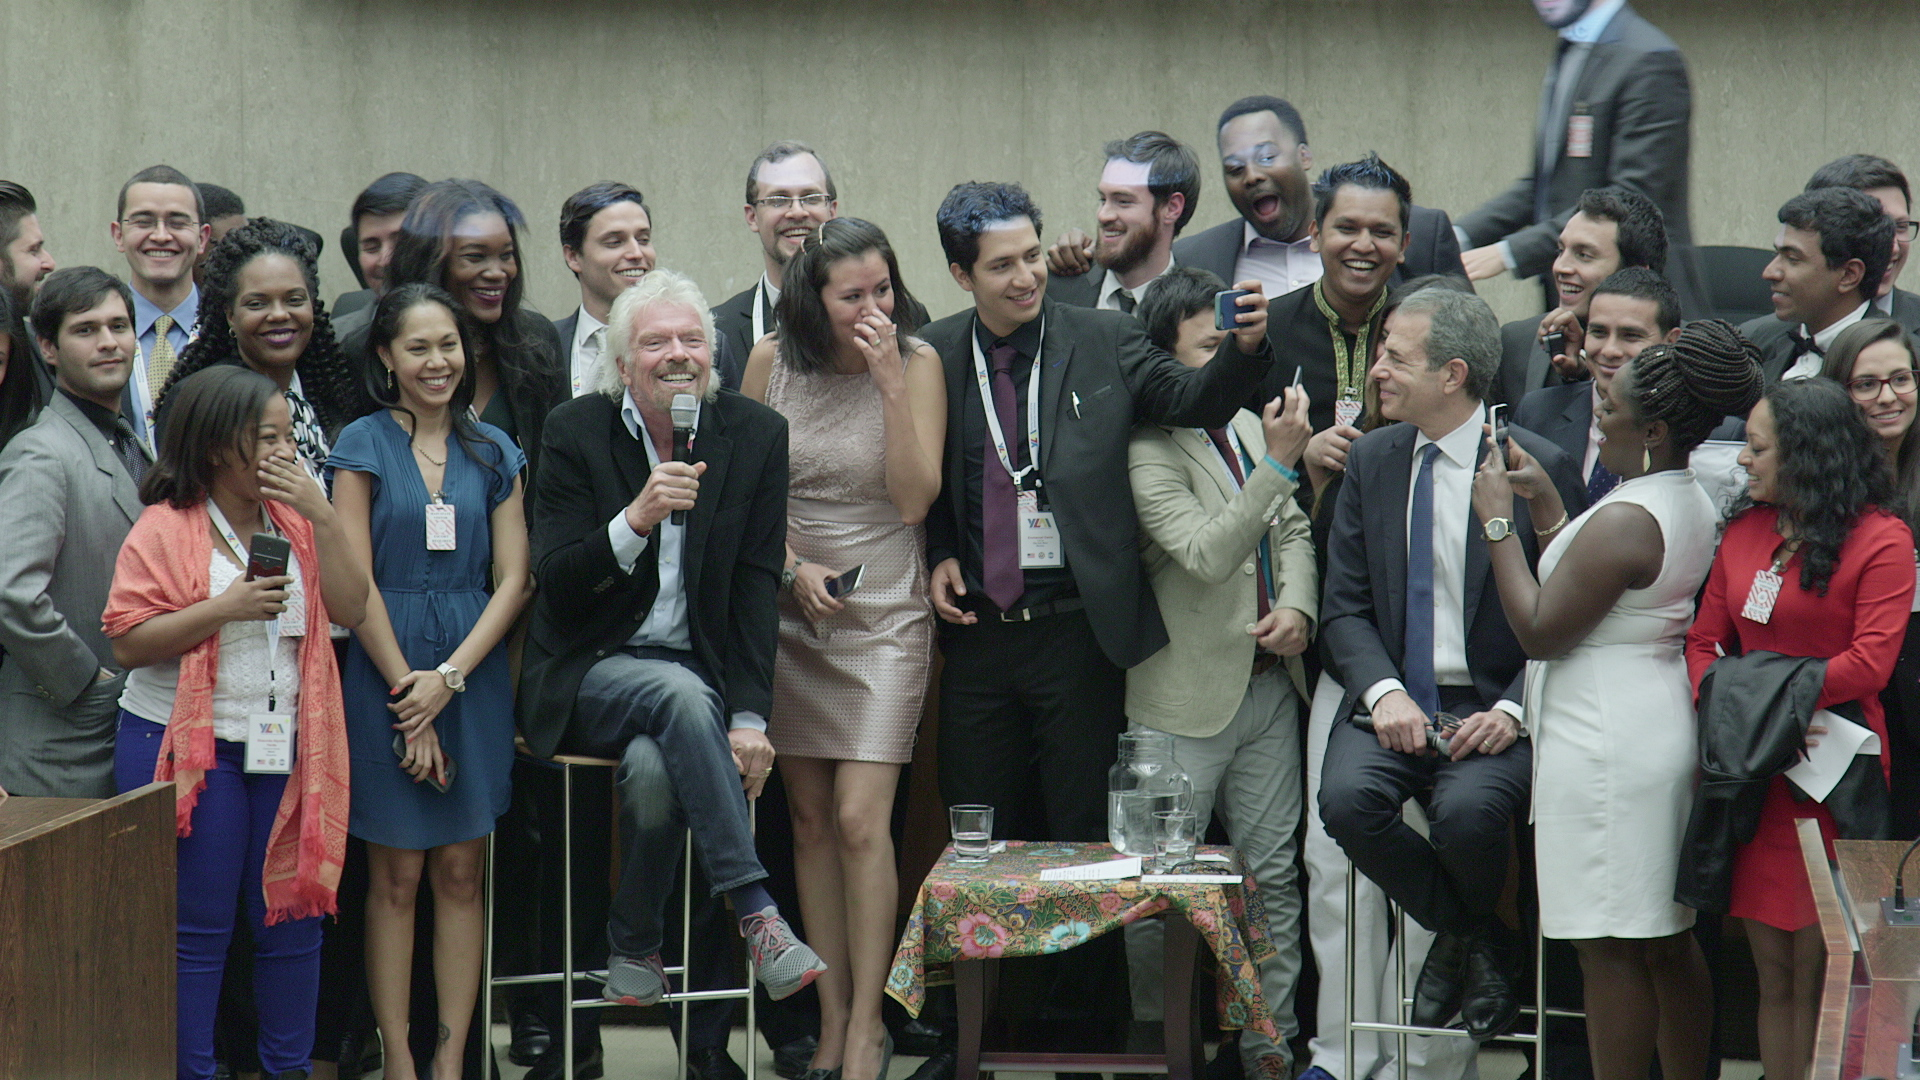 Sir Richard Branson and Rick Stengel meeting with Fellows of the Young Leaders of the Americas Initiative (YLAI)